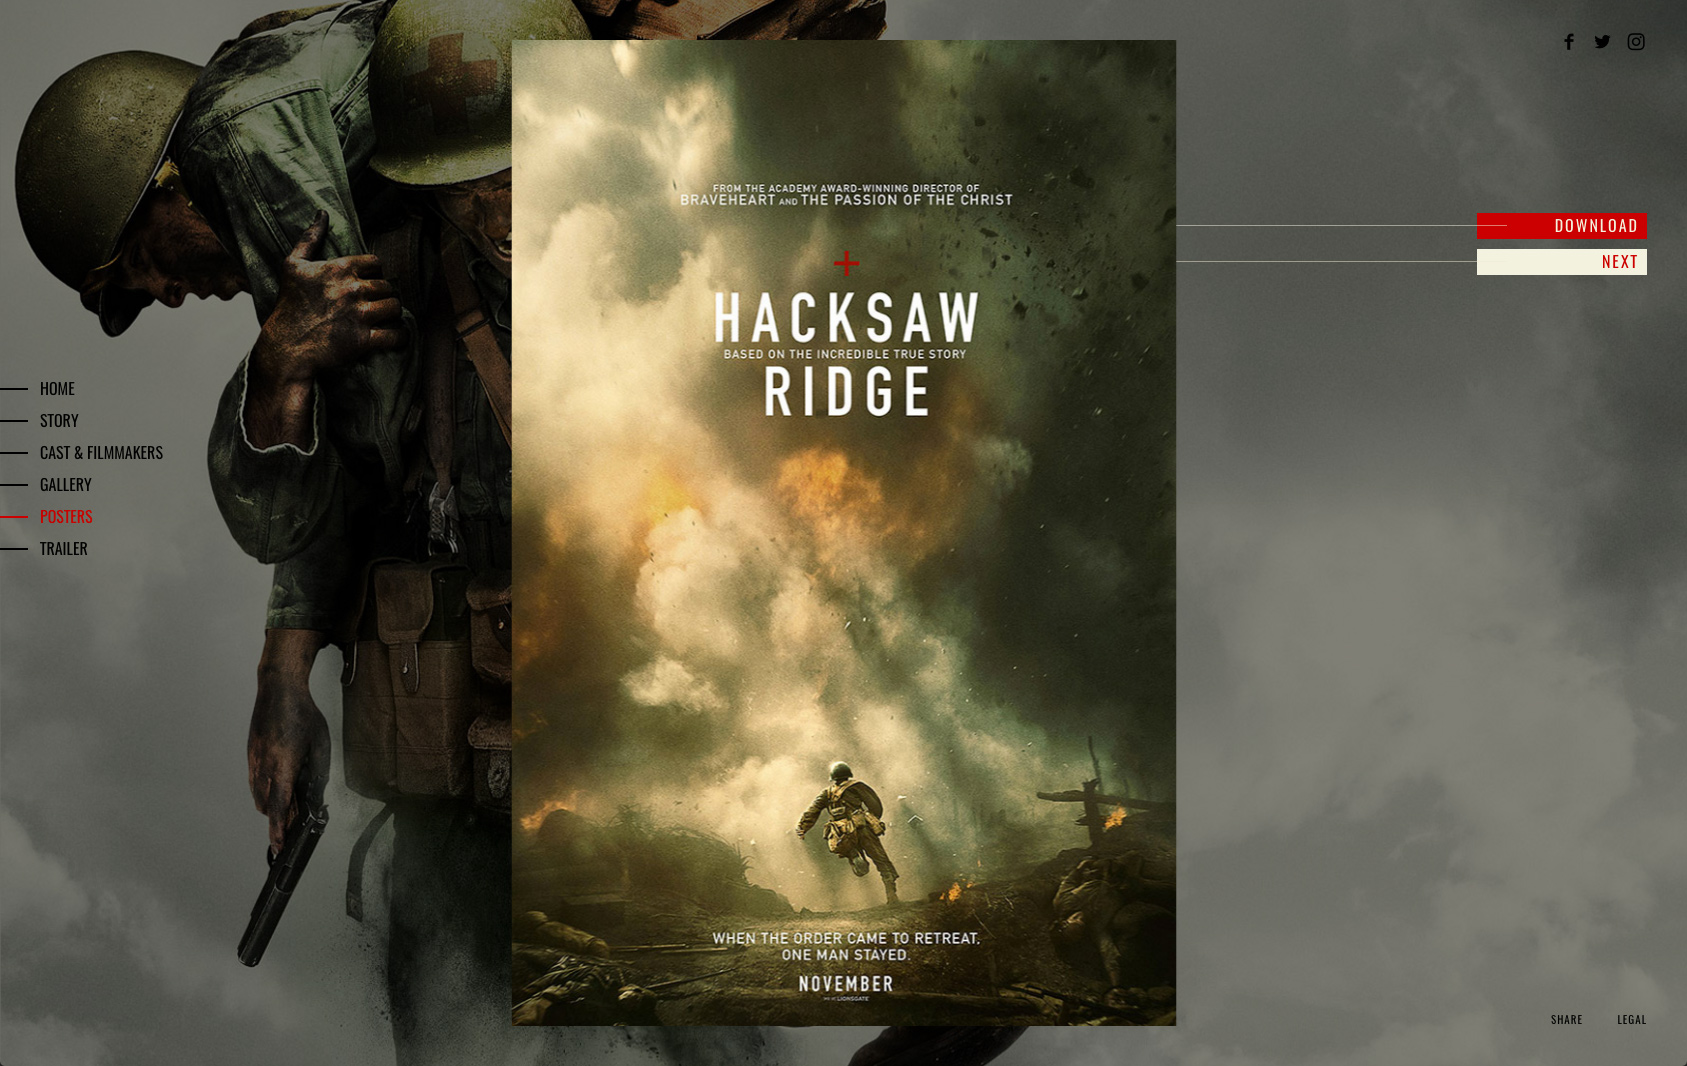 Hacksaw Ridge – Rogue Creative Agency Andrew Garfield 2016